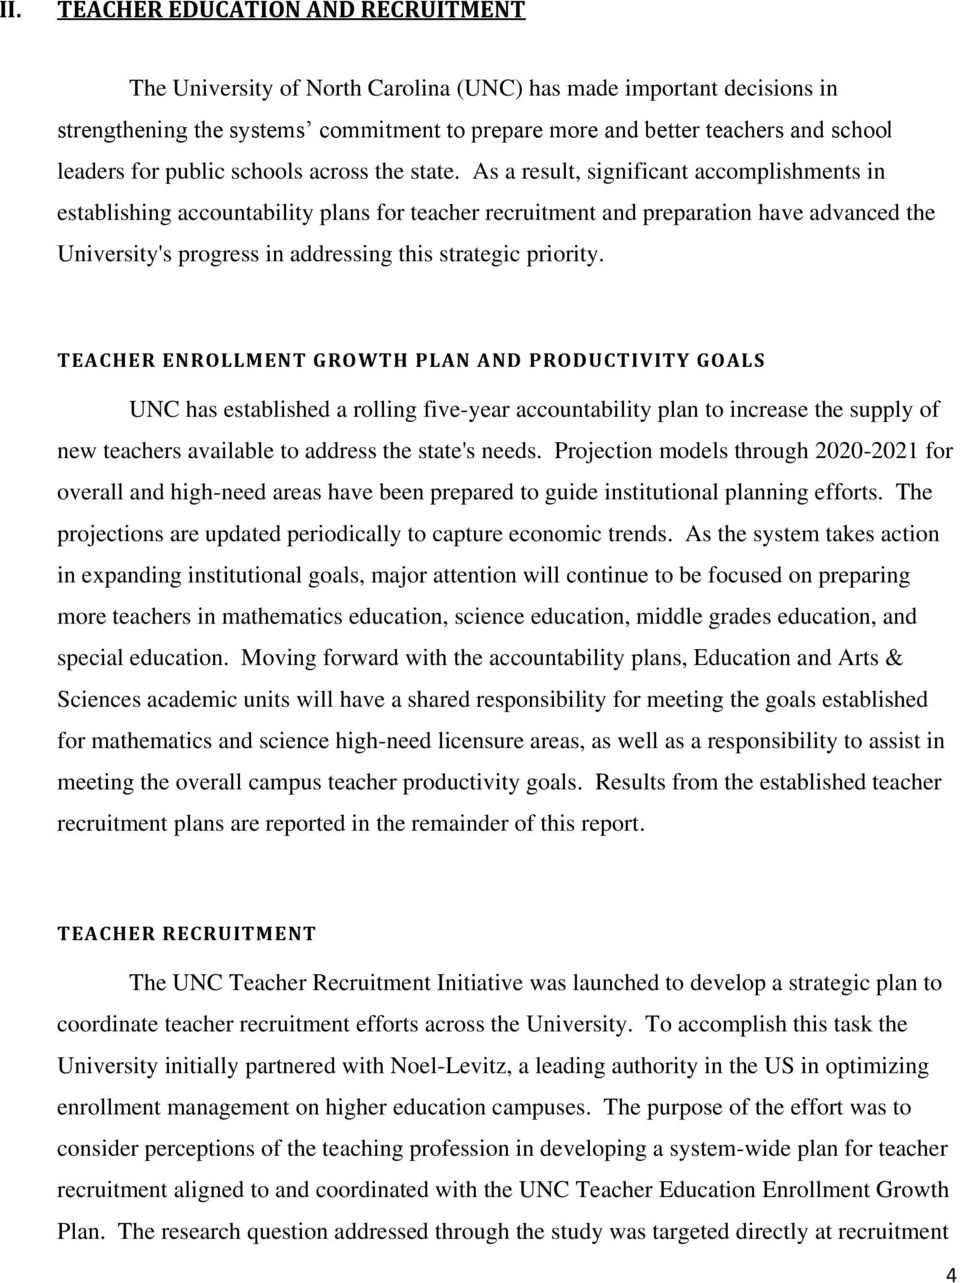 As a result, significant accomplishments in establishing accountability plans for teacher recruitment and preparation have advanced the University's progress in addressing this strategic priority.